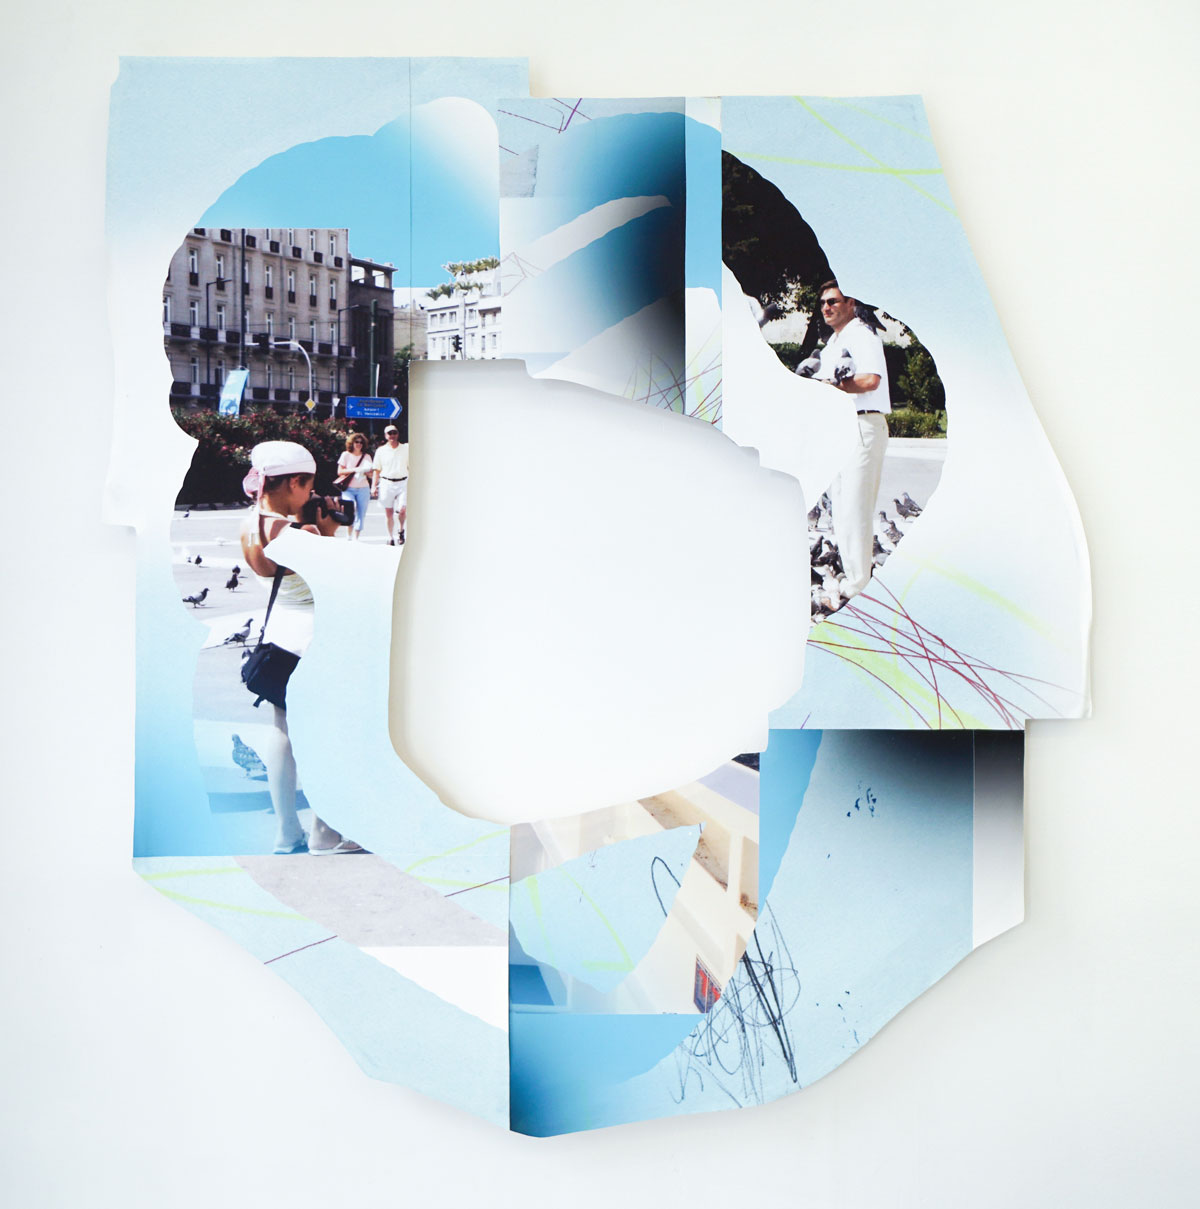 Blue and white mixed media piece with vacation snapshots and a cut-out center, revealing white gallery wall.